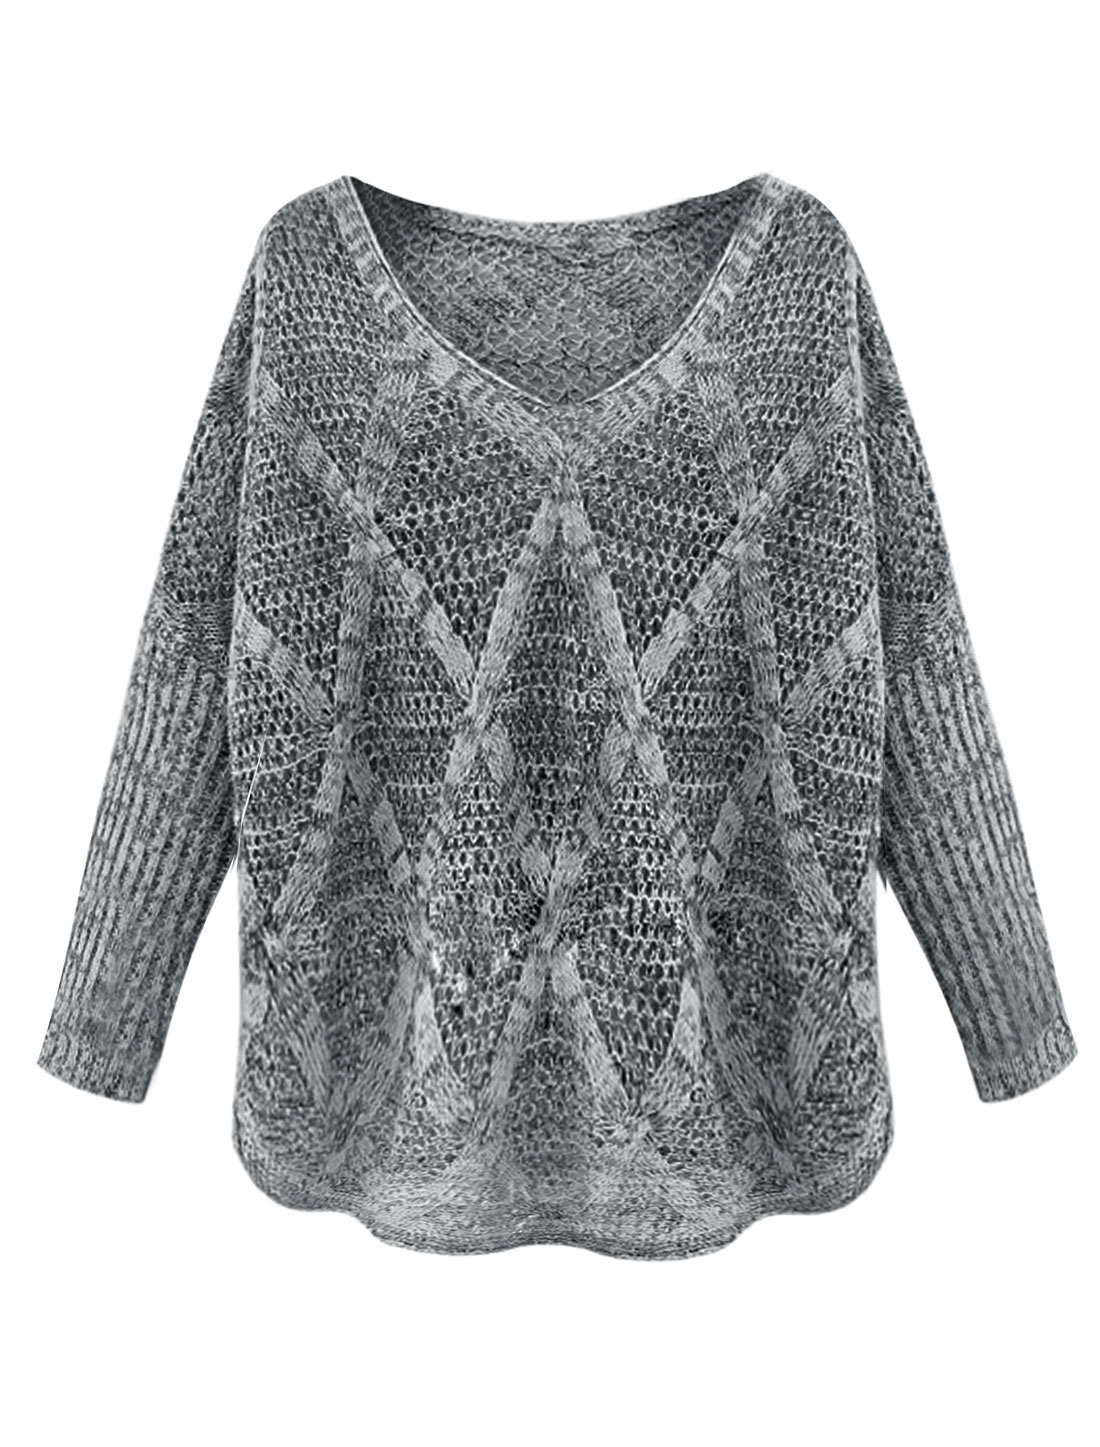 Lady V Neck Hollow Out See Through Long Sleeve Loose Fit Knit Top Gray S